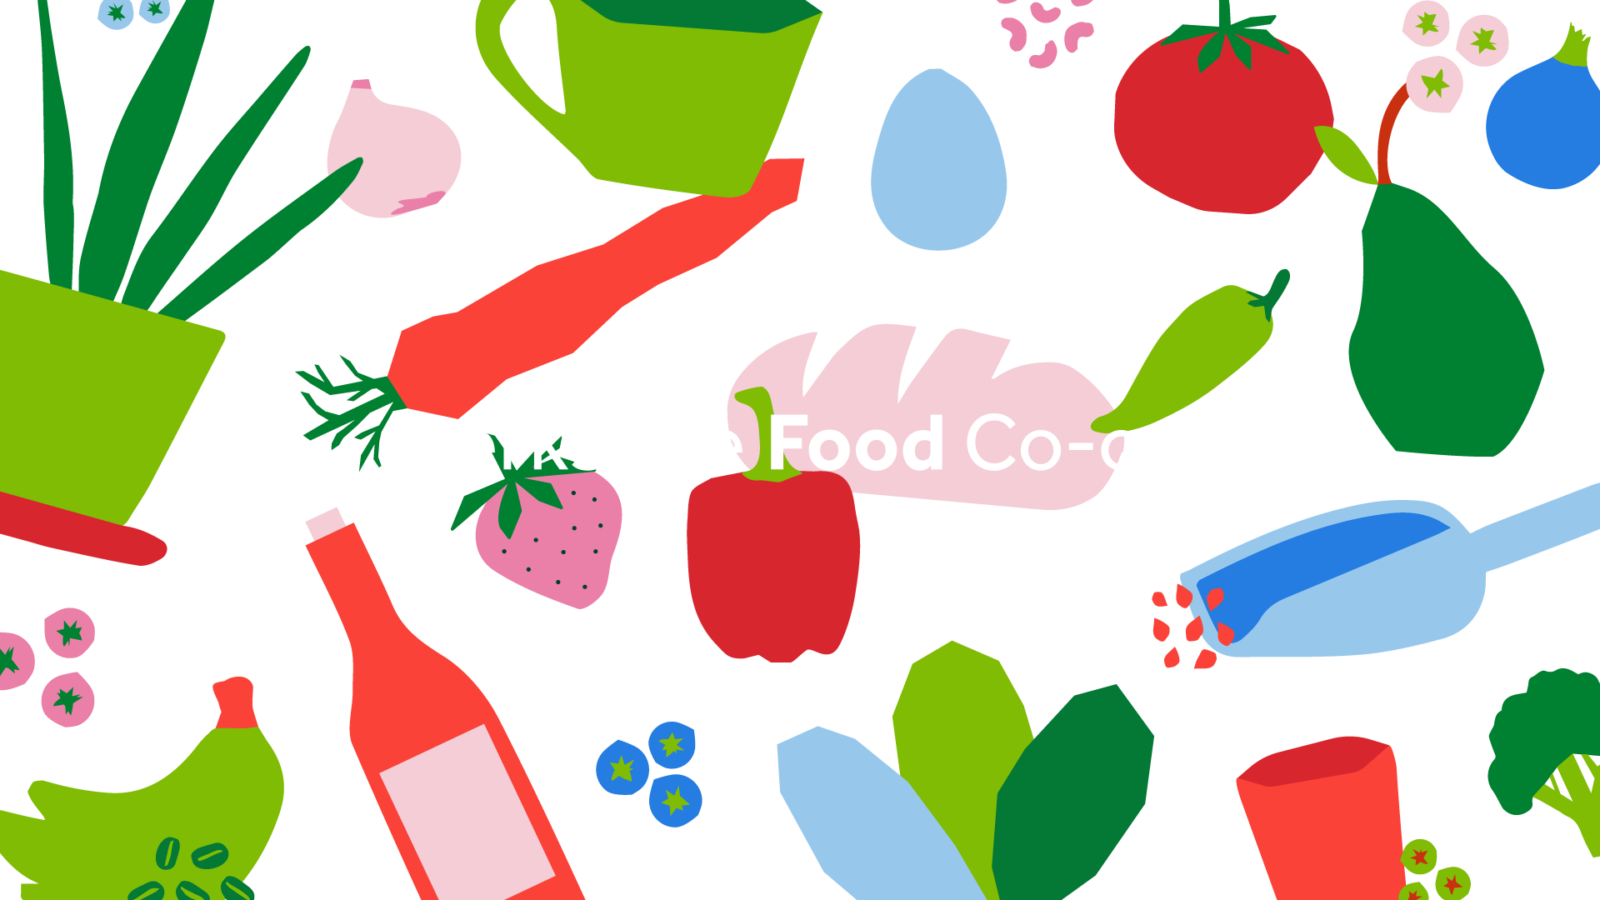 Berkshire Food Co-op